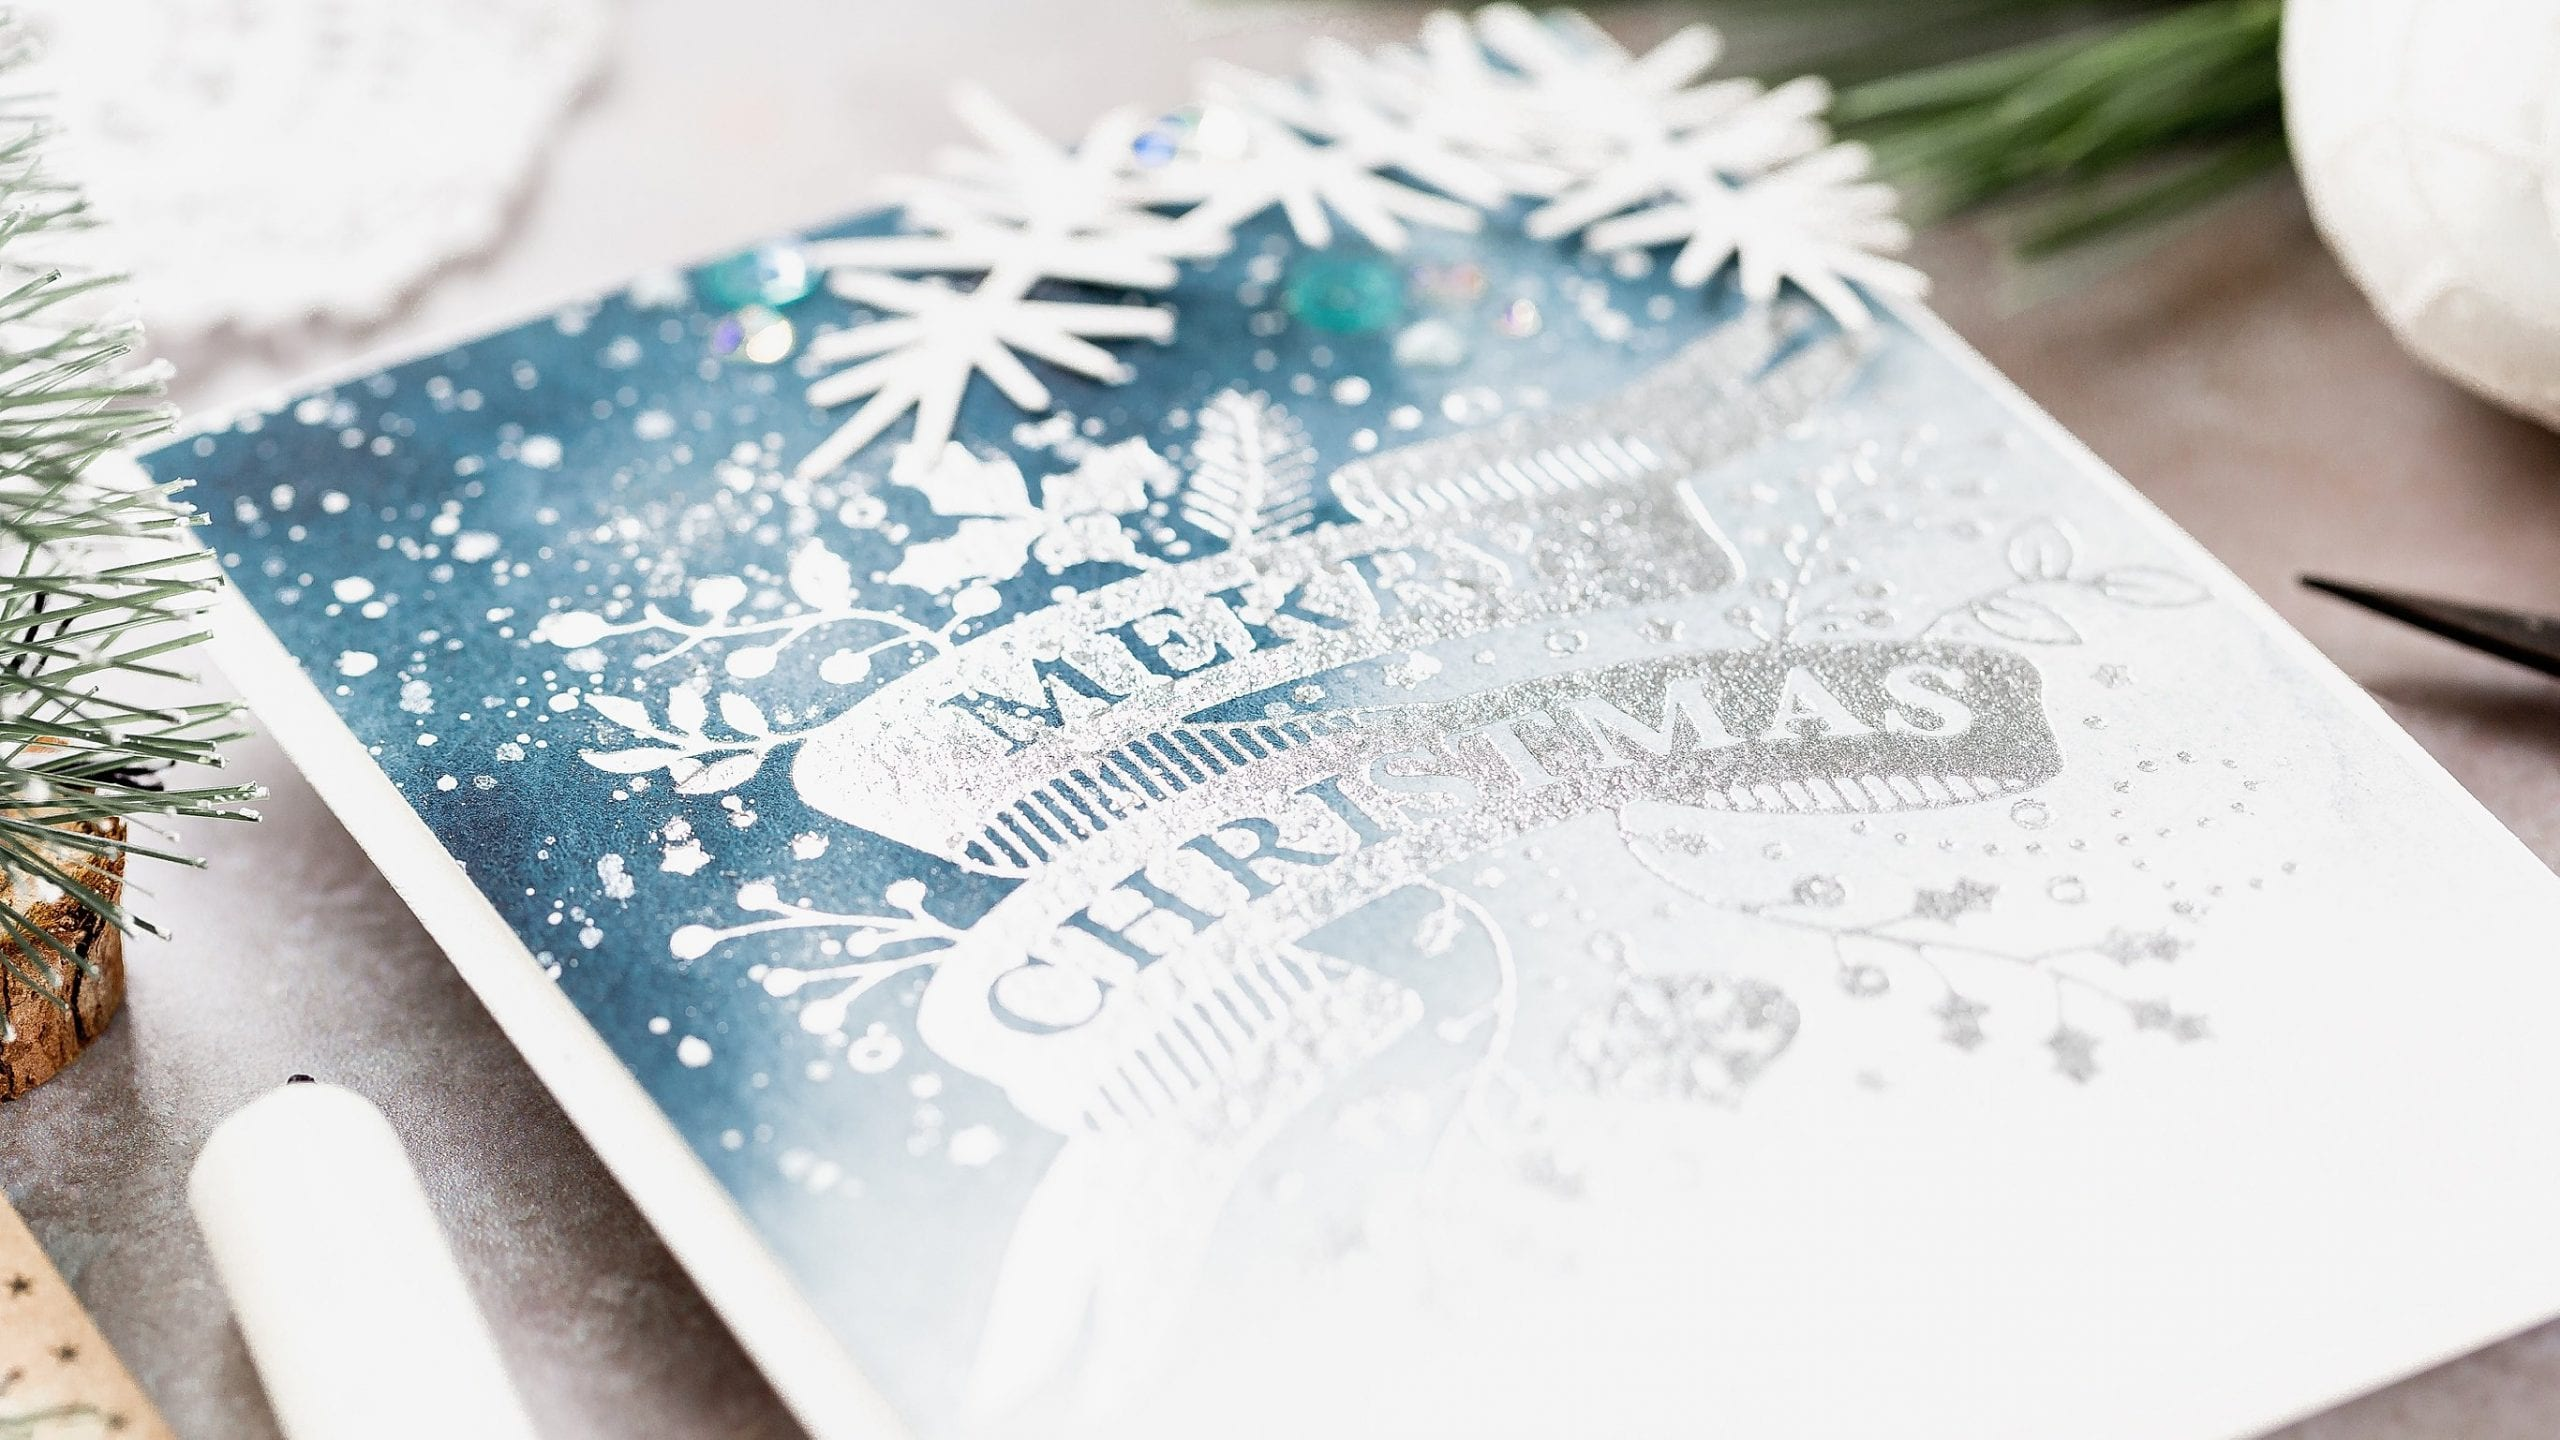 Silver foiled deep blue watercoloured Christmas handmade card by Debby Hughes using supplies from Spellbinders. Find out more here: https://limedoodledesign.com/2019/08/video-foiled-watercolour-christmas-card/